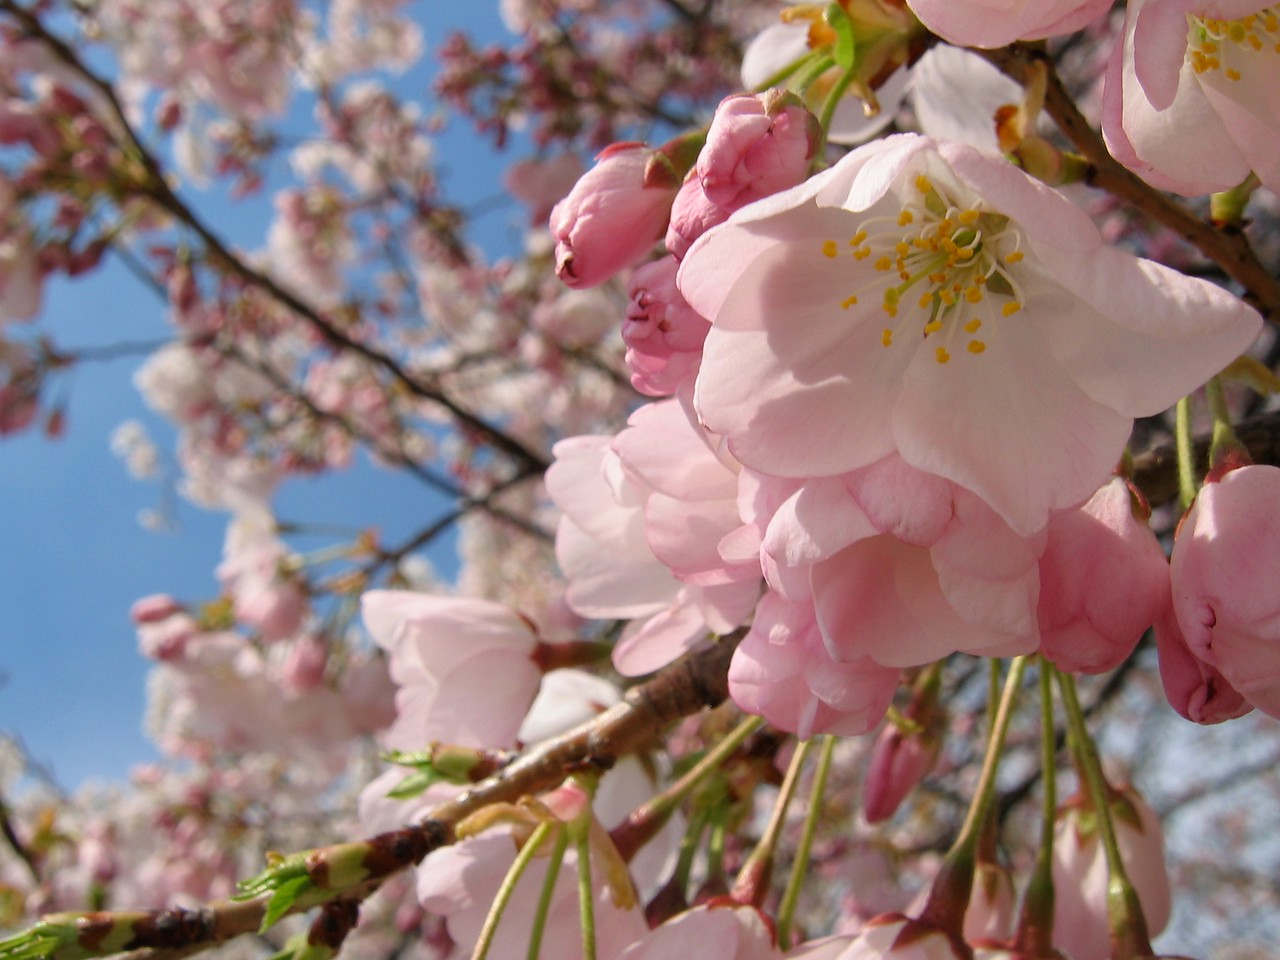 Secretary of State Philander C. Knox wrote a letter expressing the regret of all involved to the Japanese Ambassador. Takamine responded to the news with another donation for more trees, 3020 in all, of a lineage taken from a famous group of trees along the Arakawa River in Tokyo and grafted onto stock from Itami, Hyogo Prefecture. On February 14, 1912, 3020 cherry trees of twelve cultivars were shipped on board the Awa Maru and arrived in D.C. via rail car from Seattle on March 26